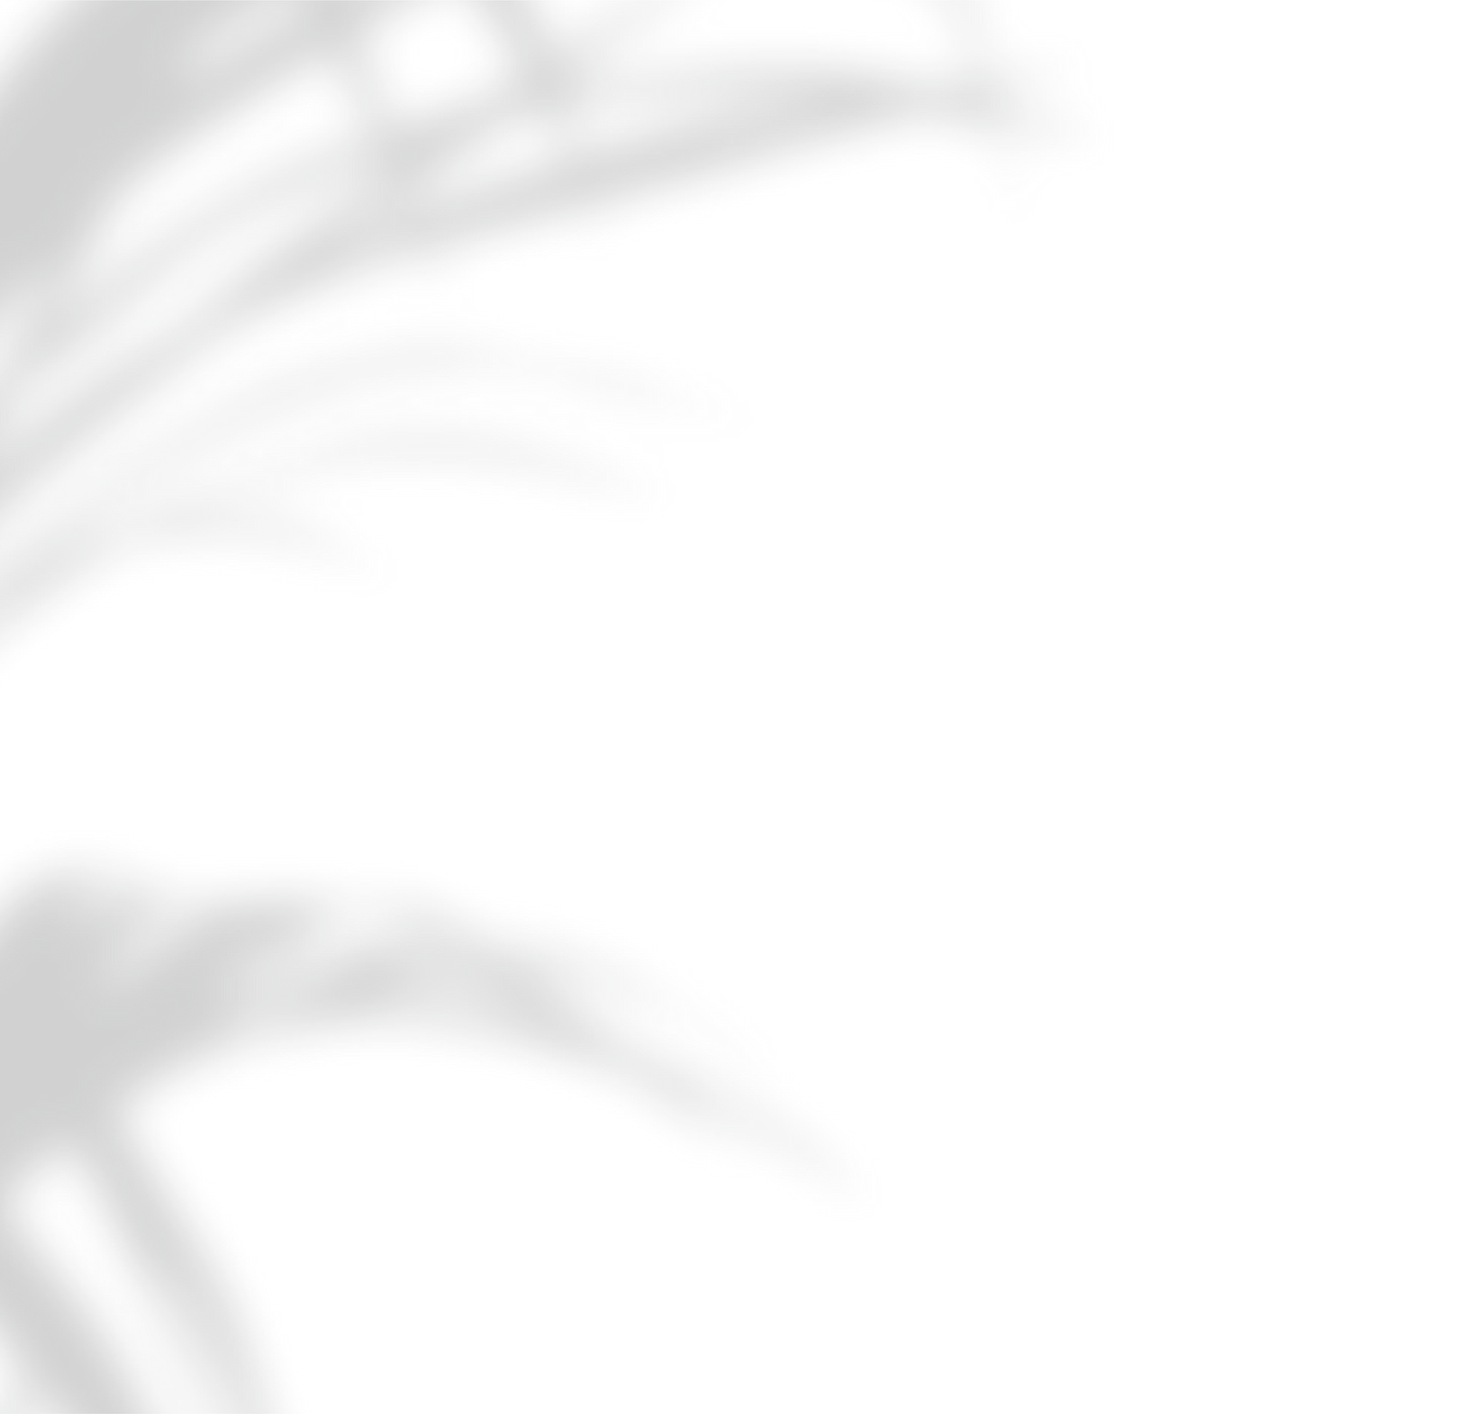 Shadow.png